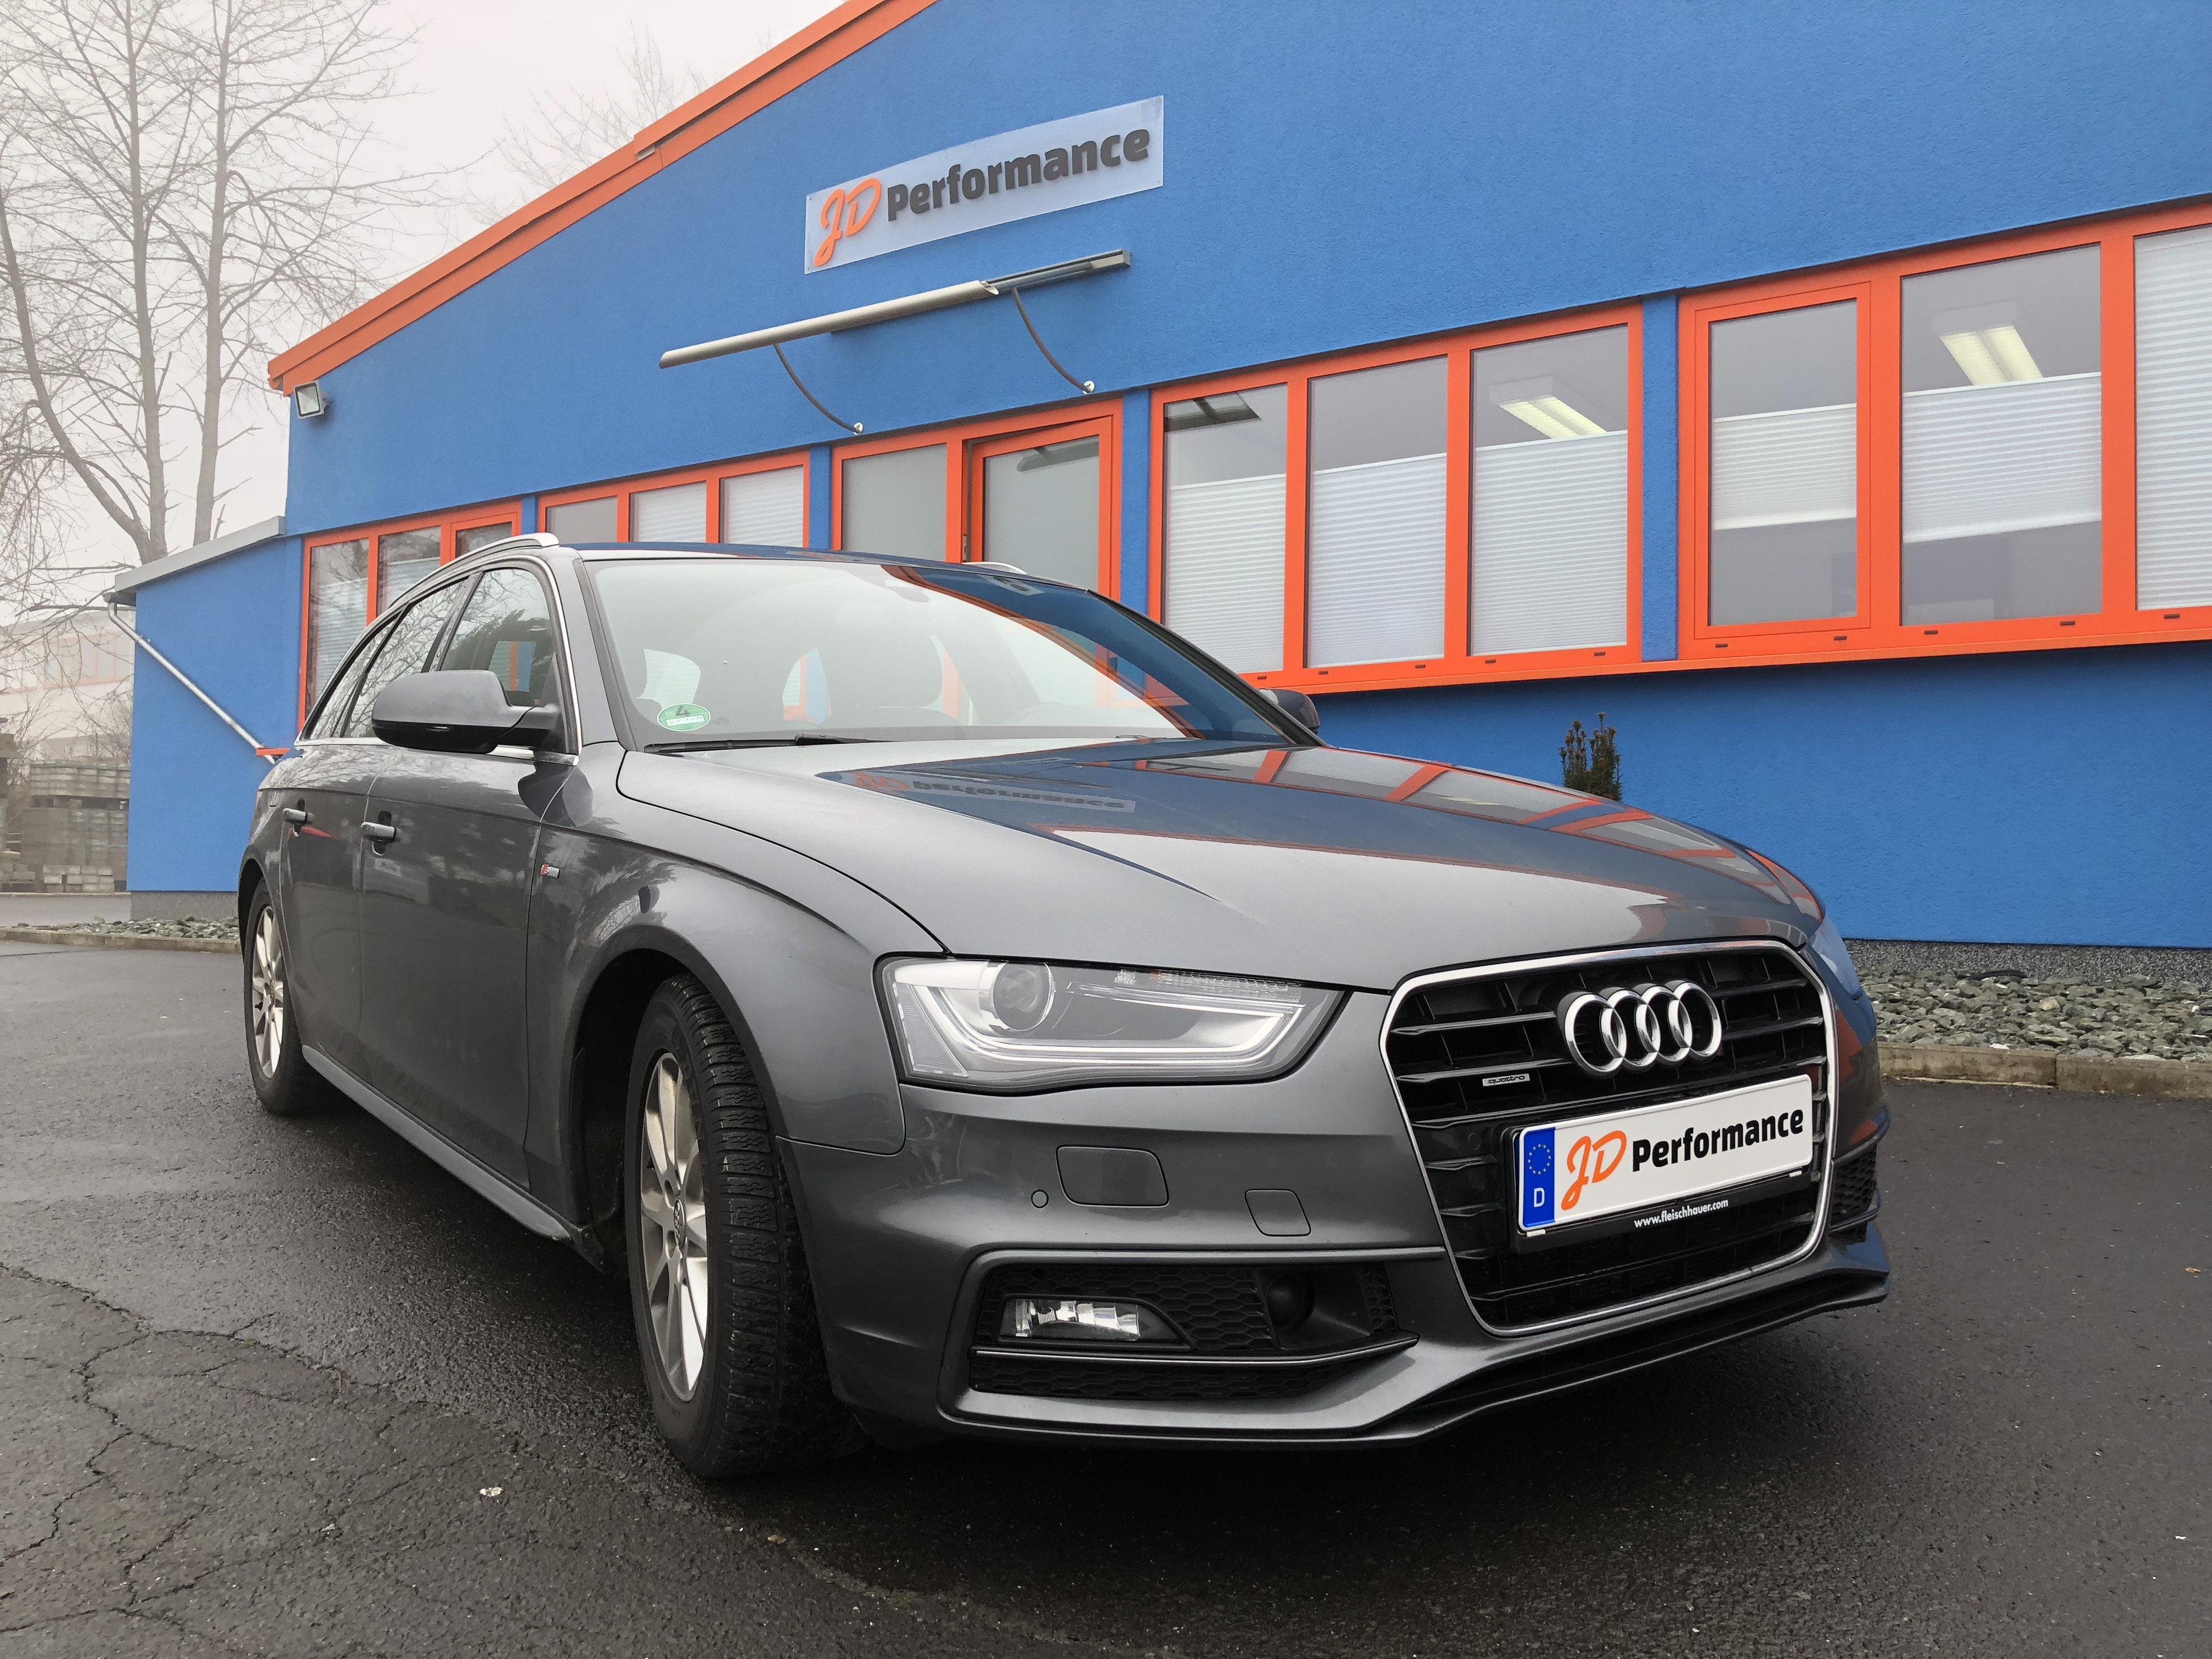 audi a4 b8 2 0 tdi kennfeldoptimierung jd performance. Black Bedroom Furniture Sets. Home Design Ideas